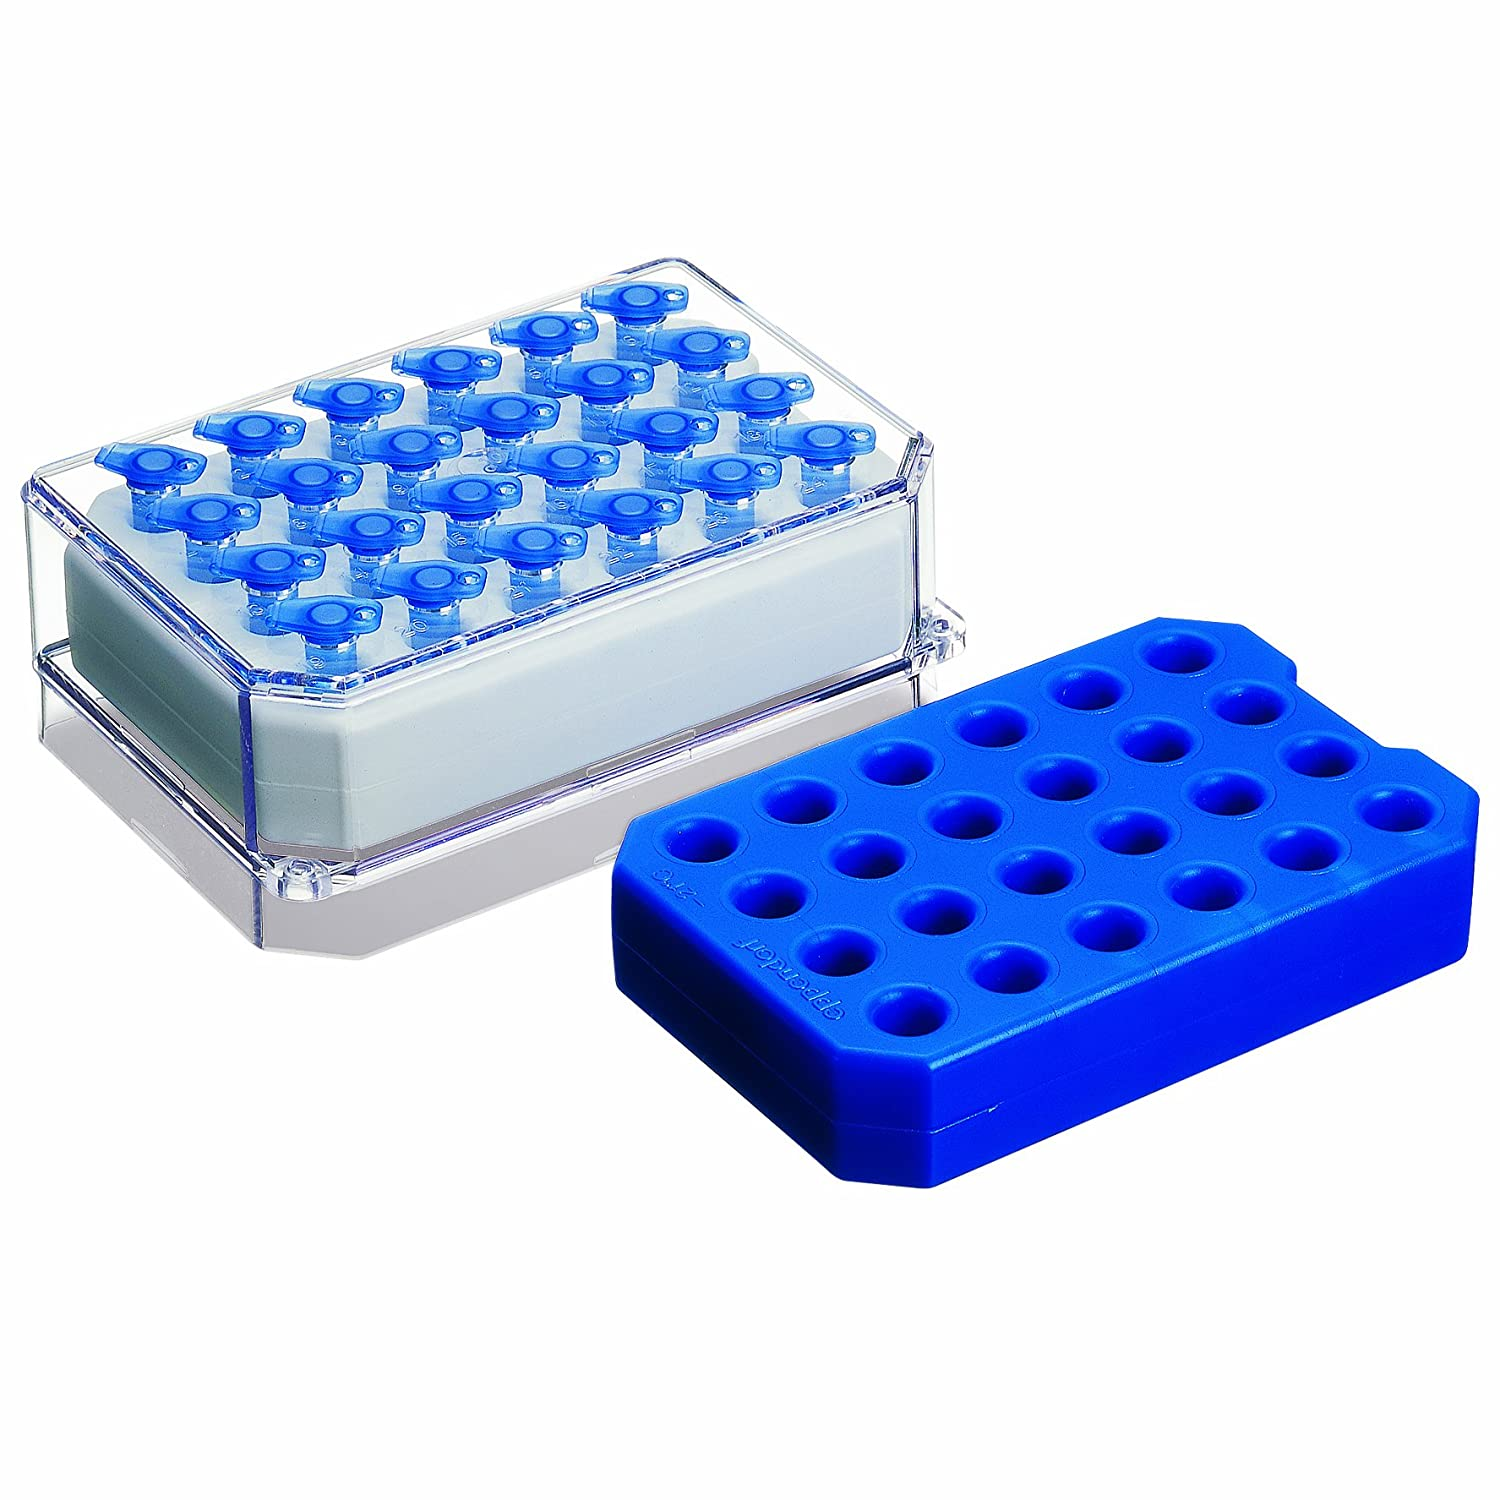 Eppendorf 022510240 White Polycarbonate IsoTherm System 0 degree C IsoPack and IsoRack Set, for 1.5/2.0mL Tubes